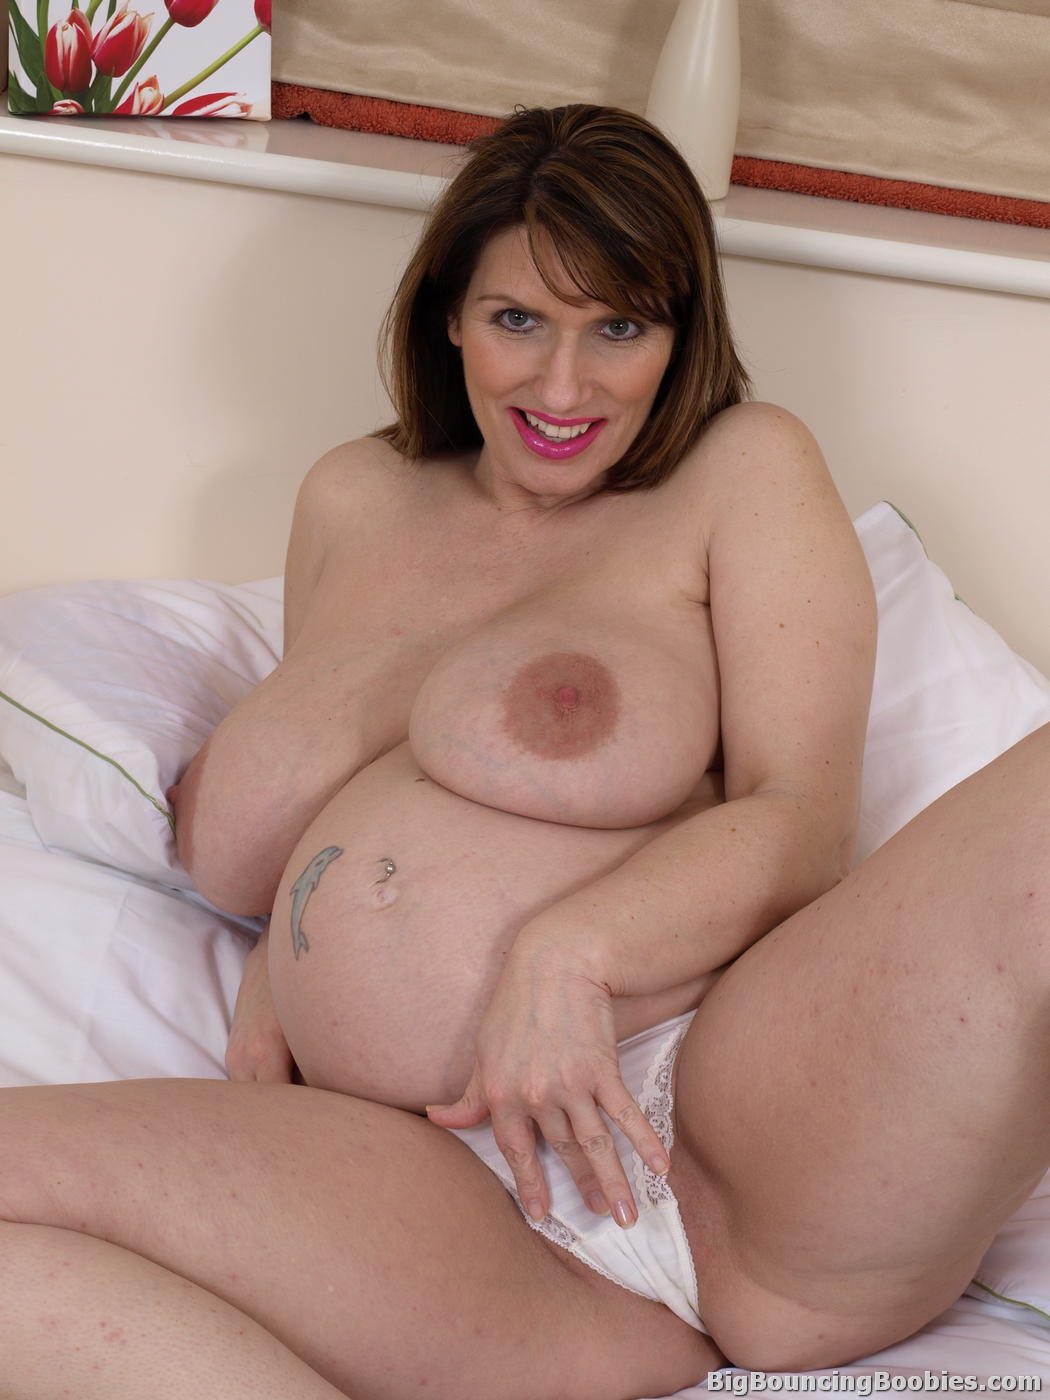 About ass amore.com mom sex professional.... She